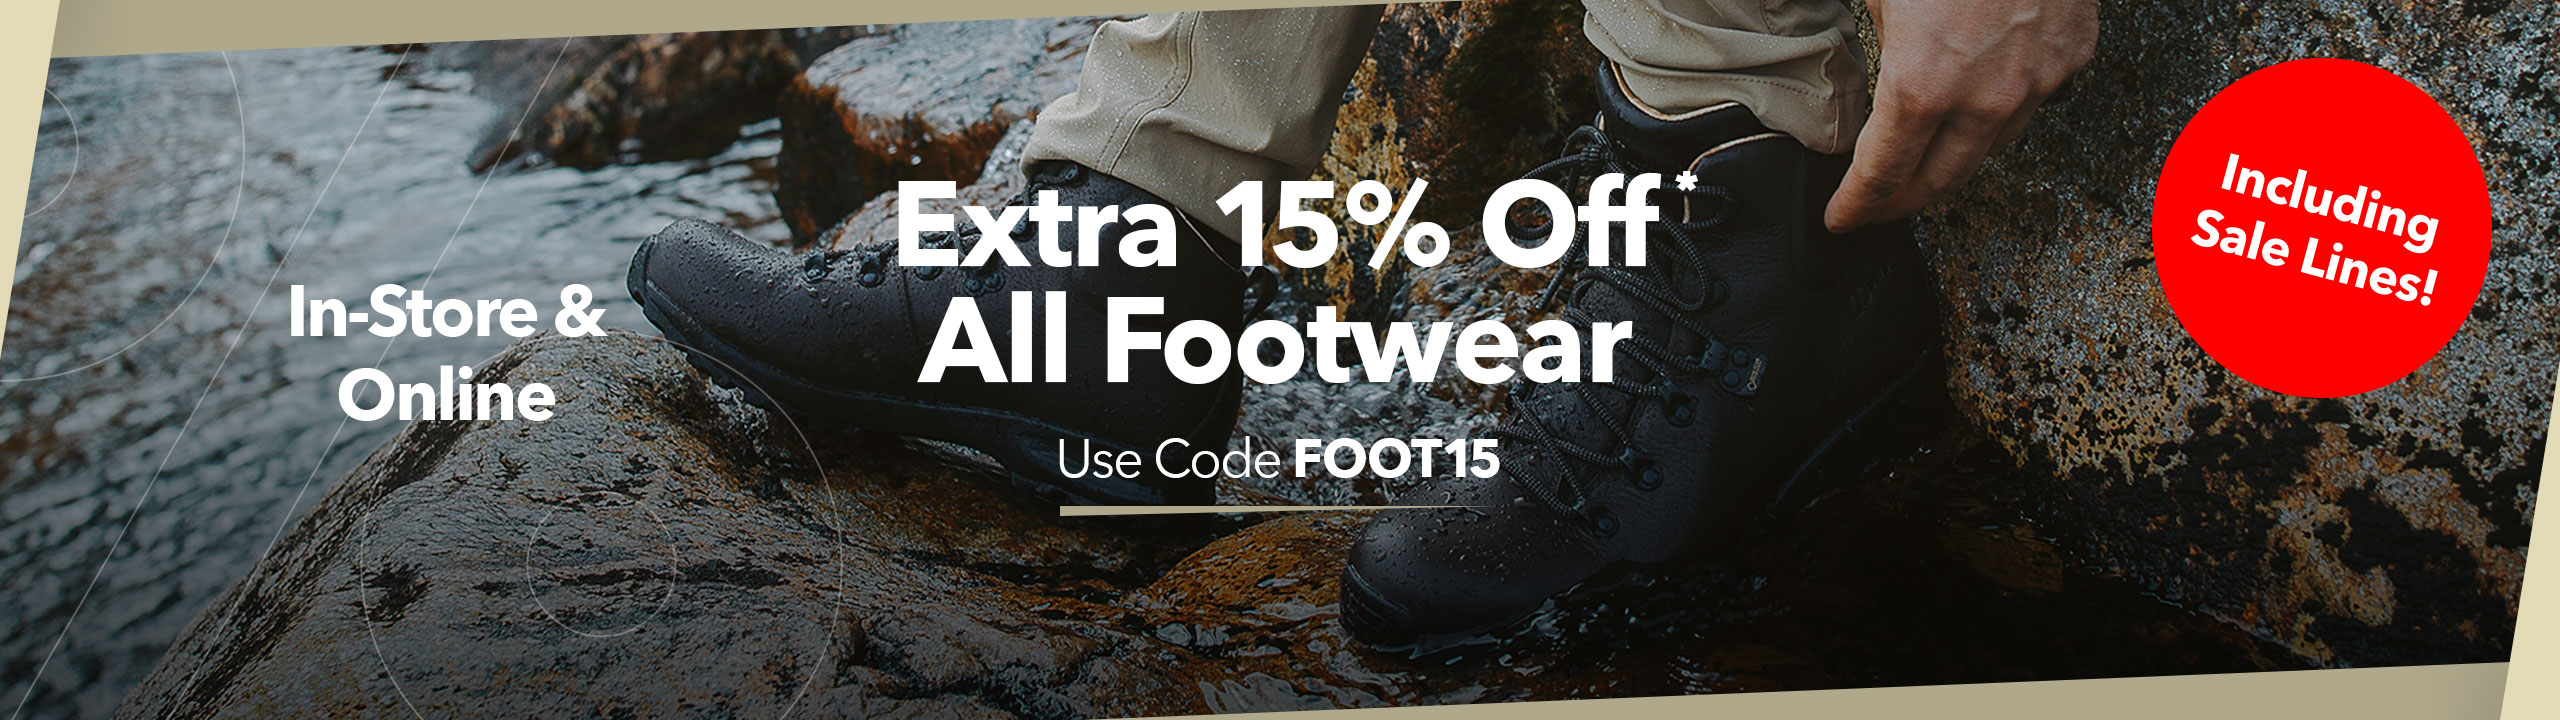 Extra 15% Off* Footwear Use Code FOOT15